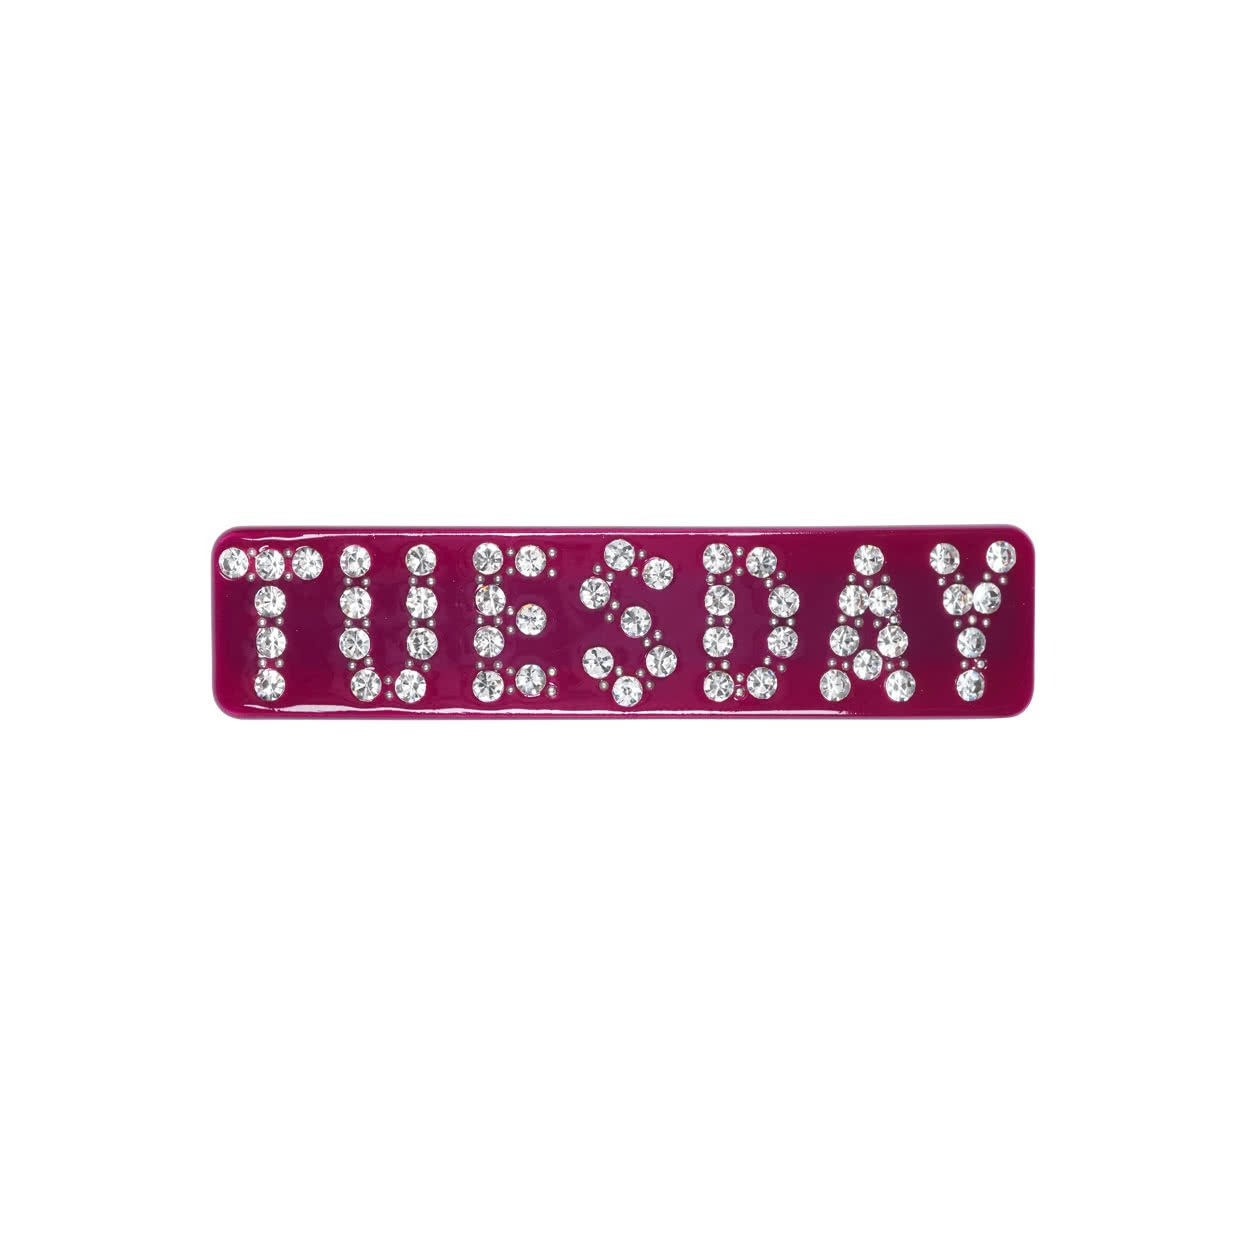 Image of Hair Barrette with crystals - Burgundy / Tuesday